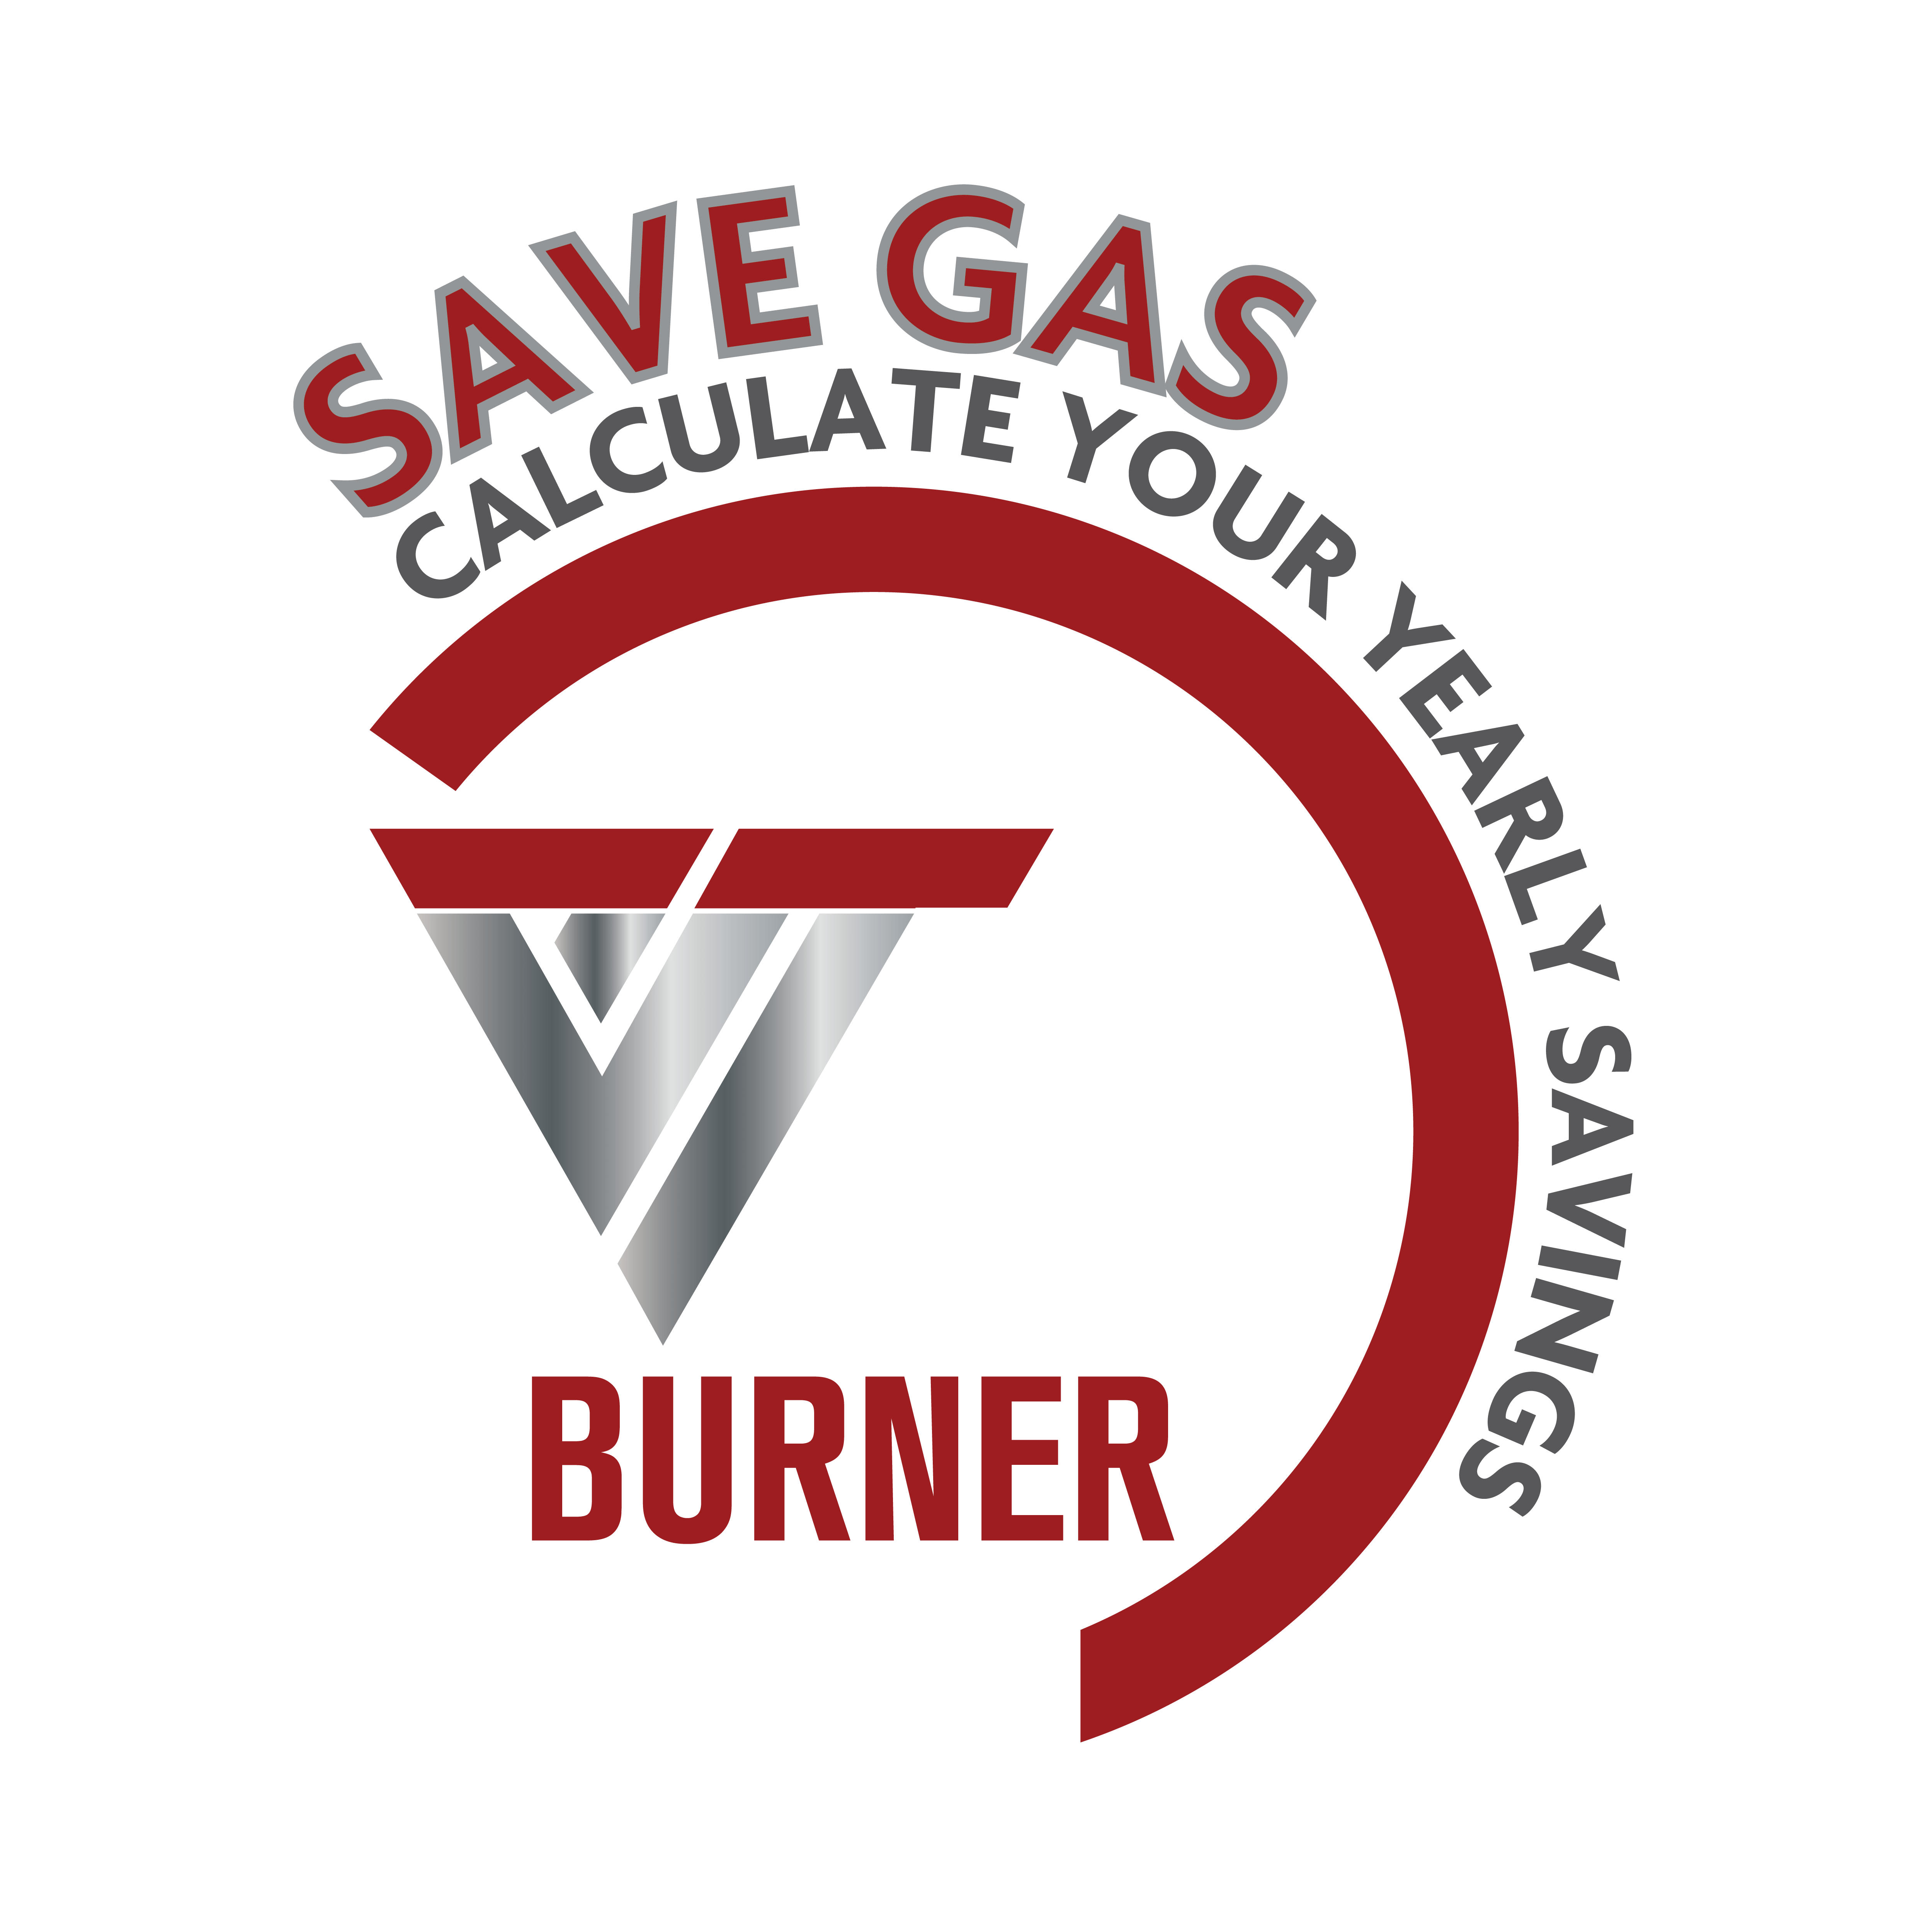 Save Gas Calculate